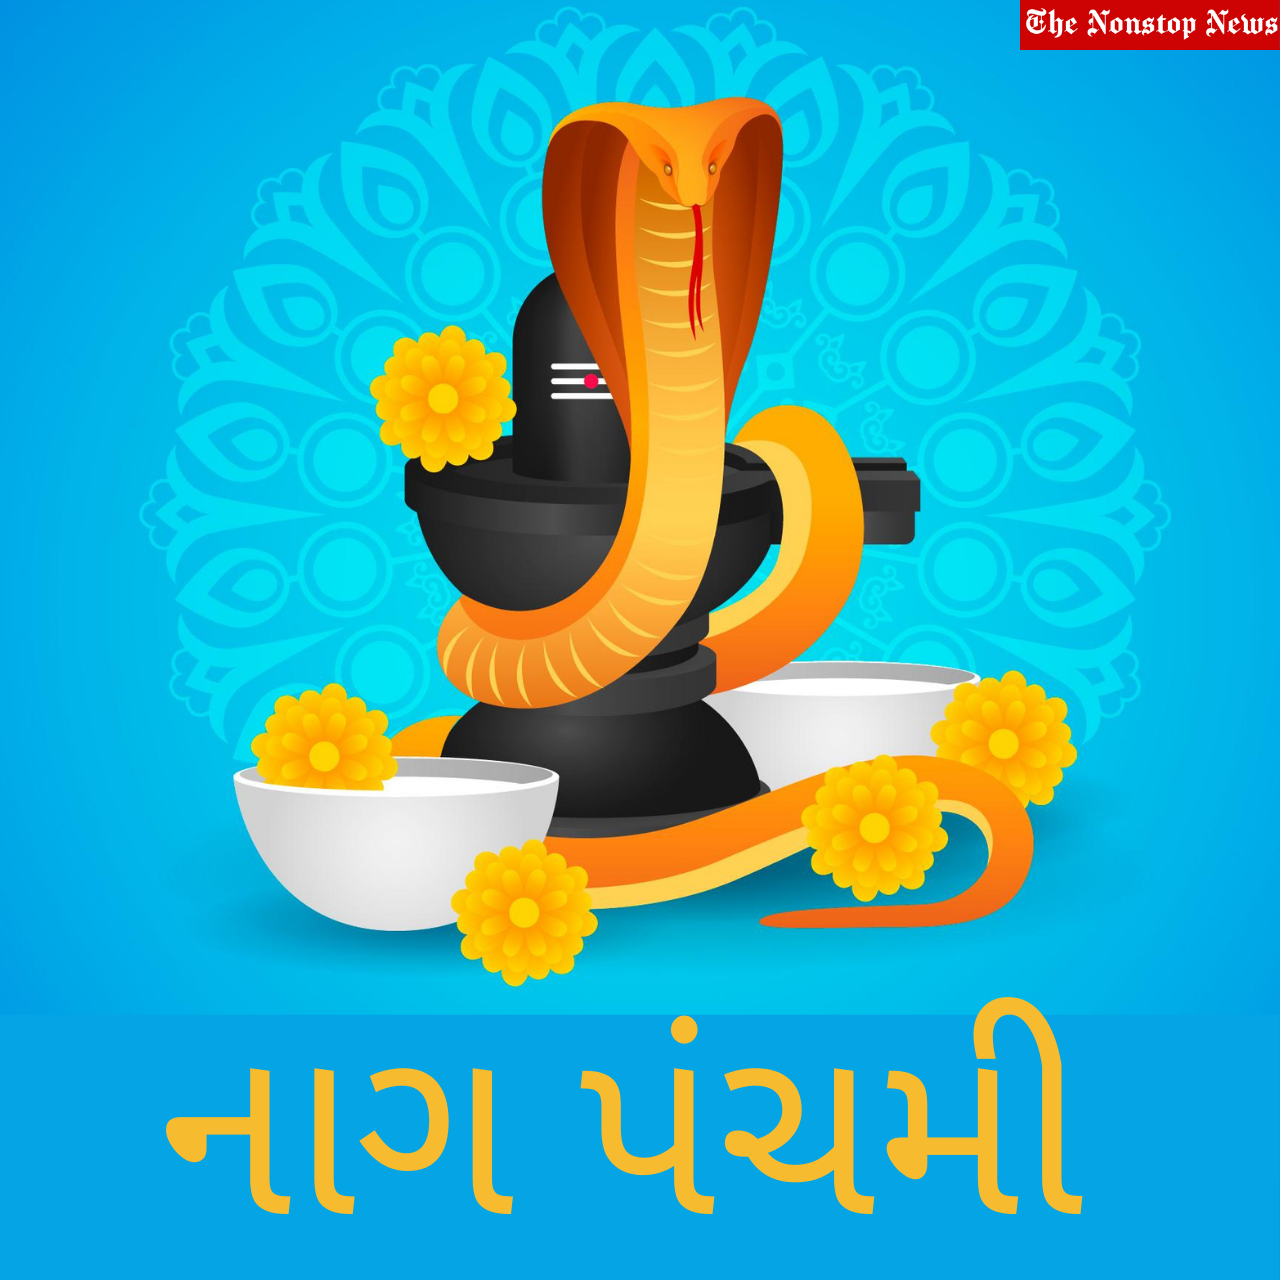 Nag Panchami 2021 Gujarati Wishes and Messages: Greetings, Poster, Stickers, Wallpaper, Messages, HD Images, and Quotes to send to your Loved Ones